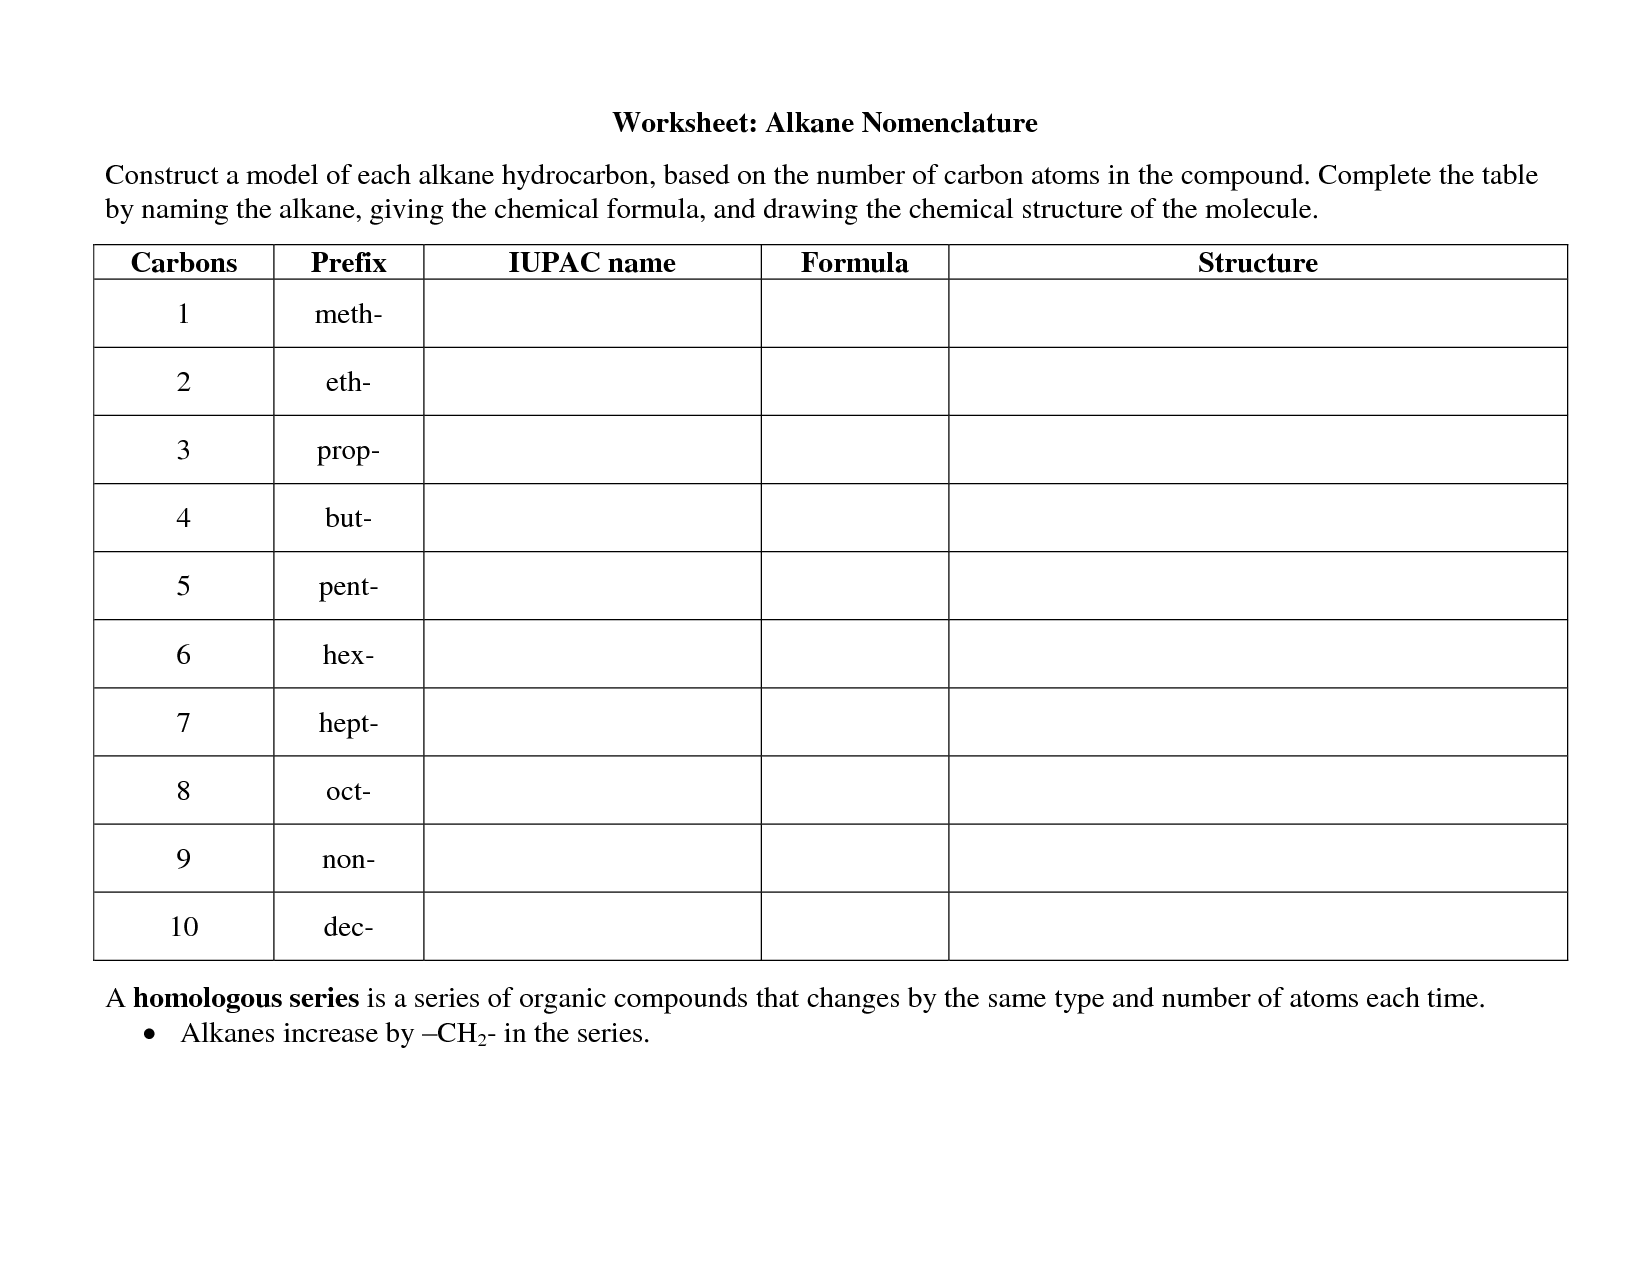 Worksheets Nomenclature Worksheet Plantsvszombiesonline